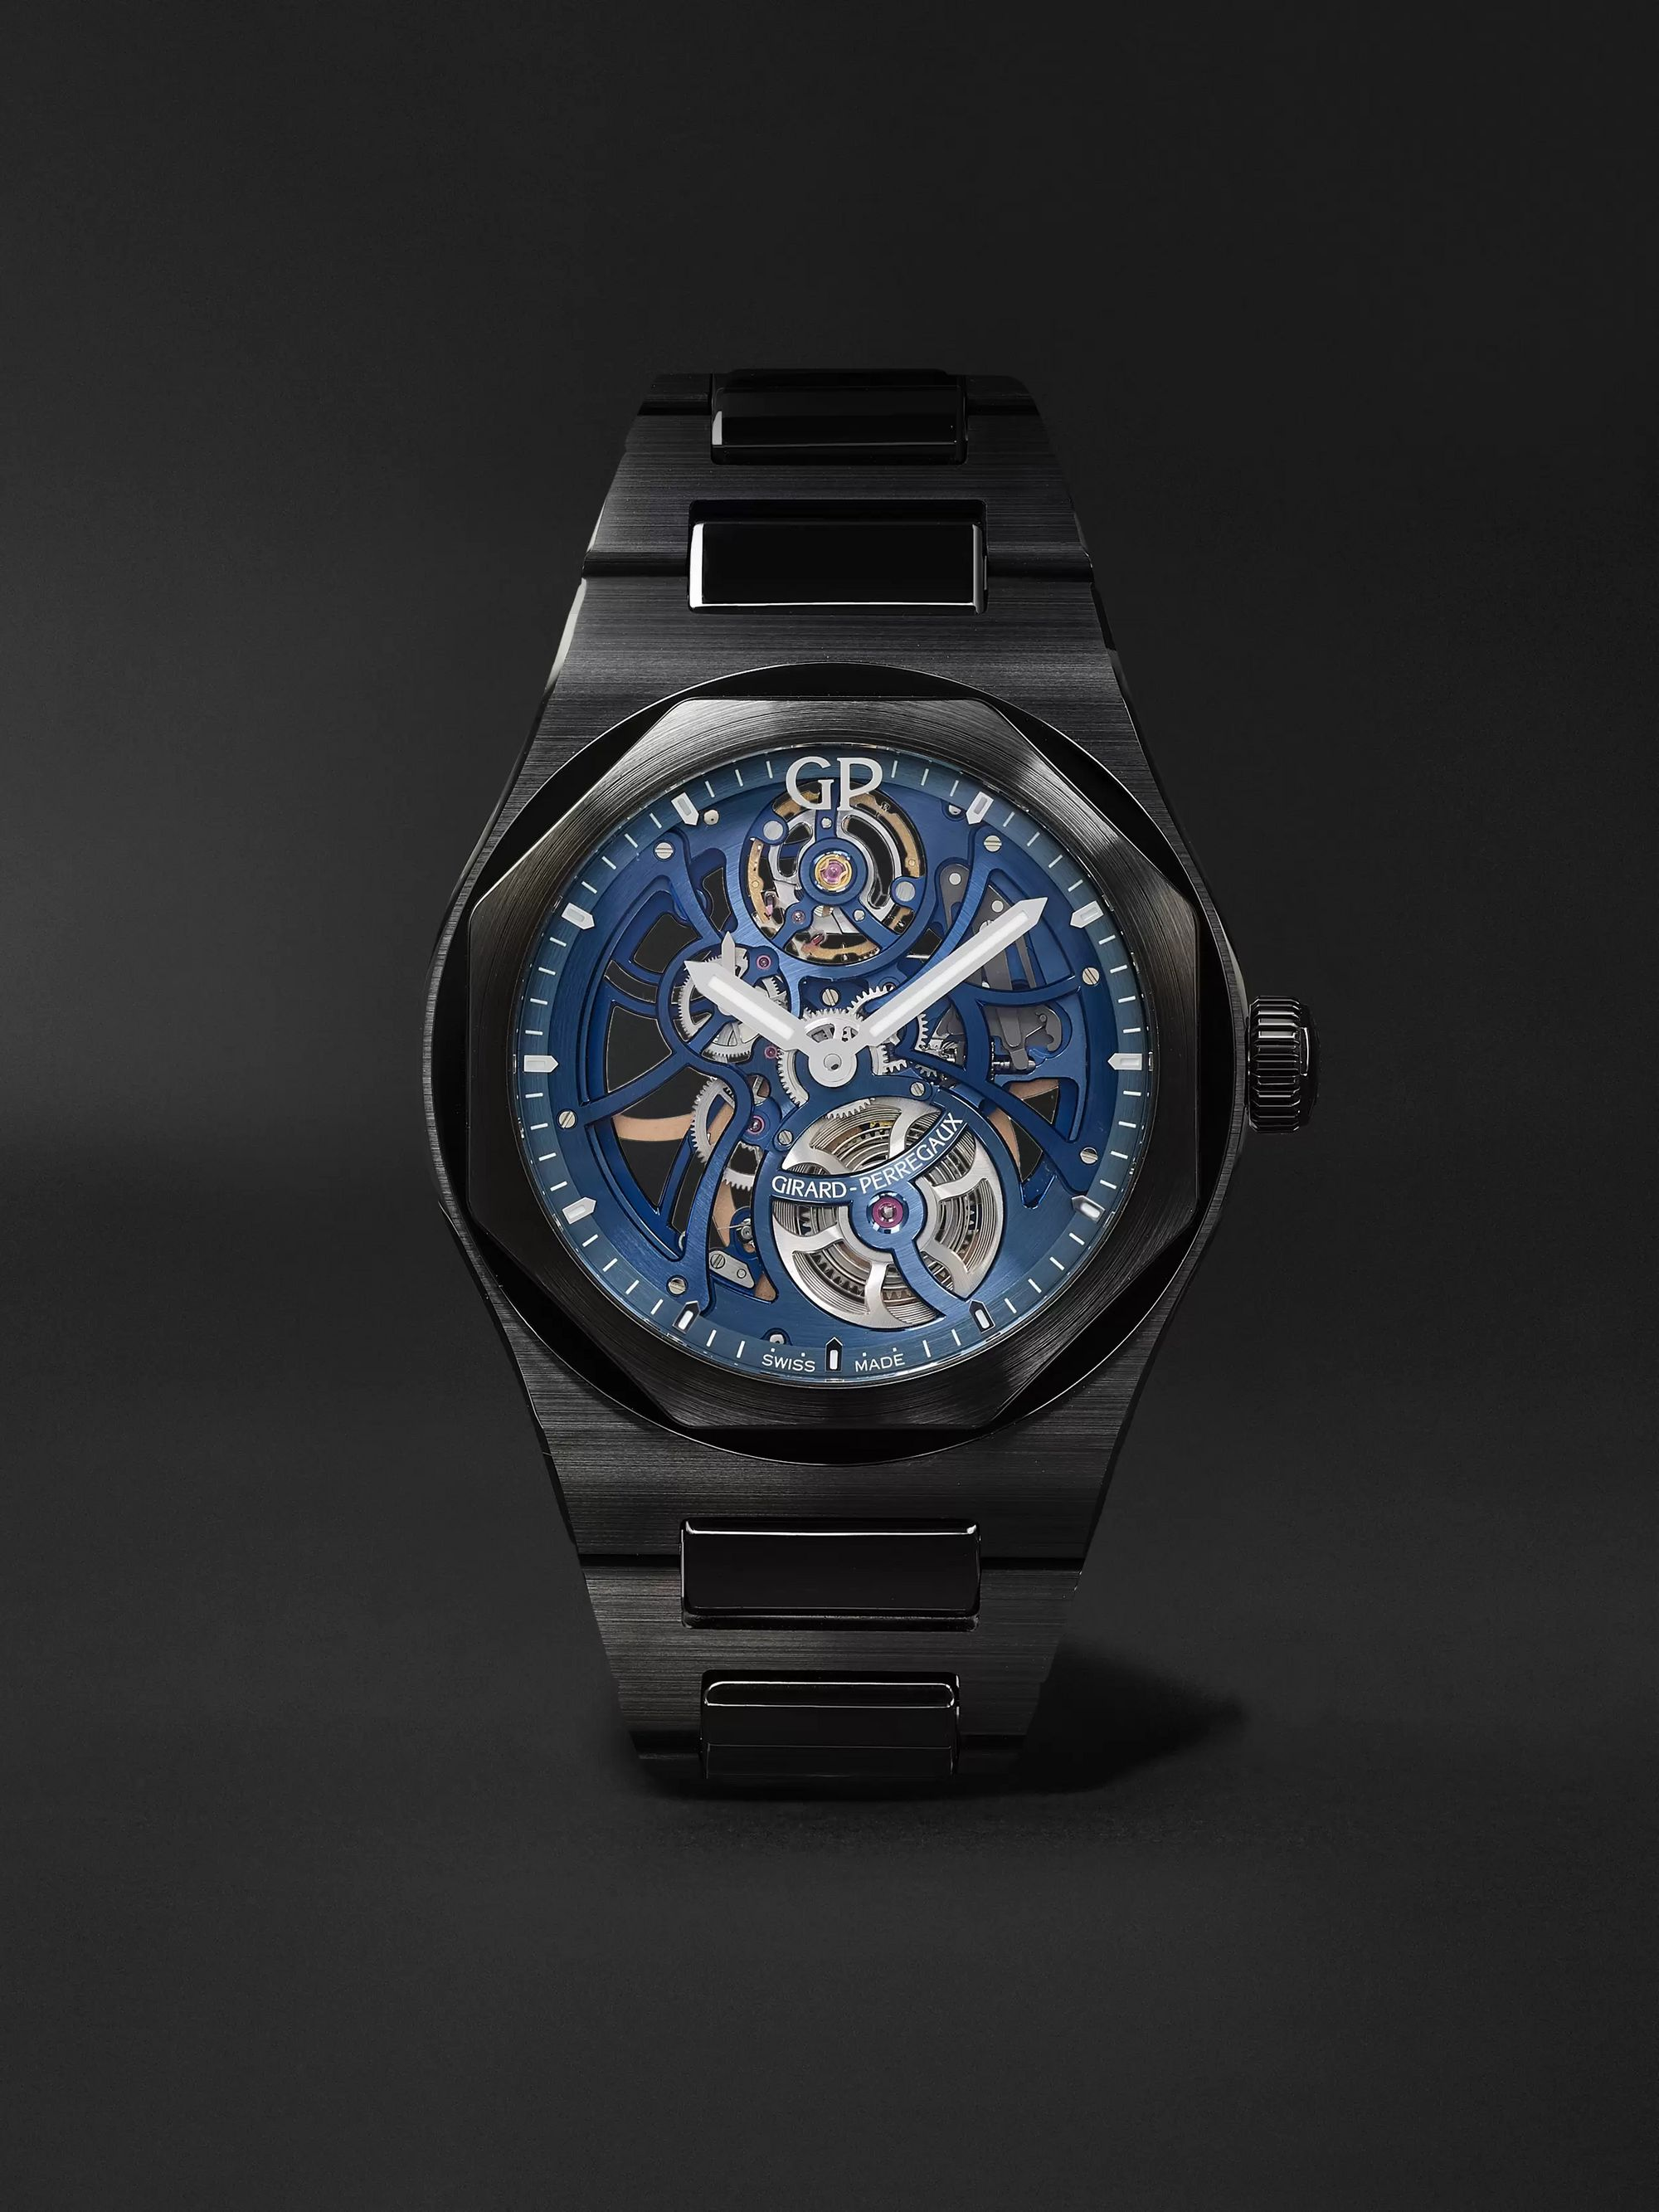 Girard-Perregaux Laureato Earth To Sky Automatic Skeleton 42mm Ceramic Watch, Ref. No. 81015-32-432-32A